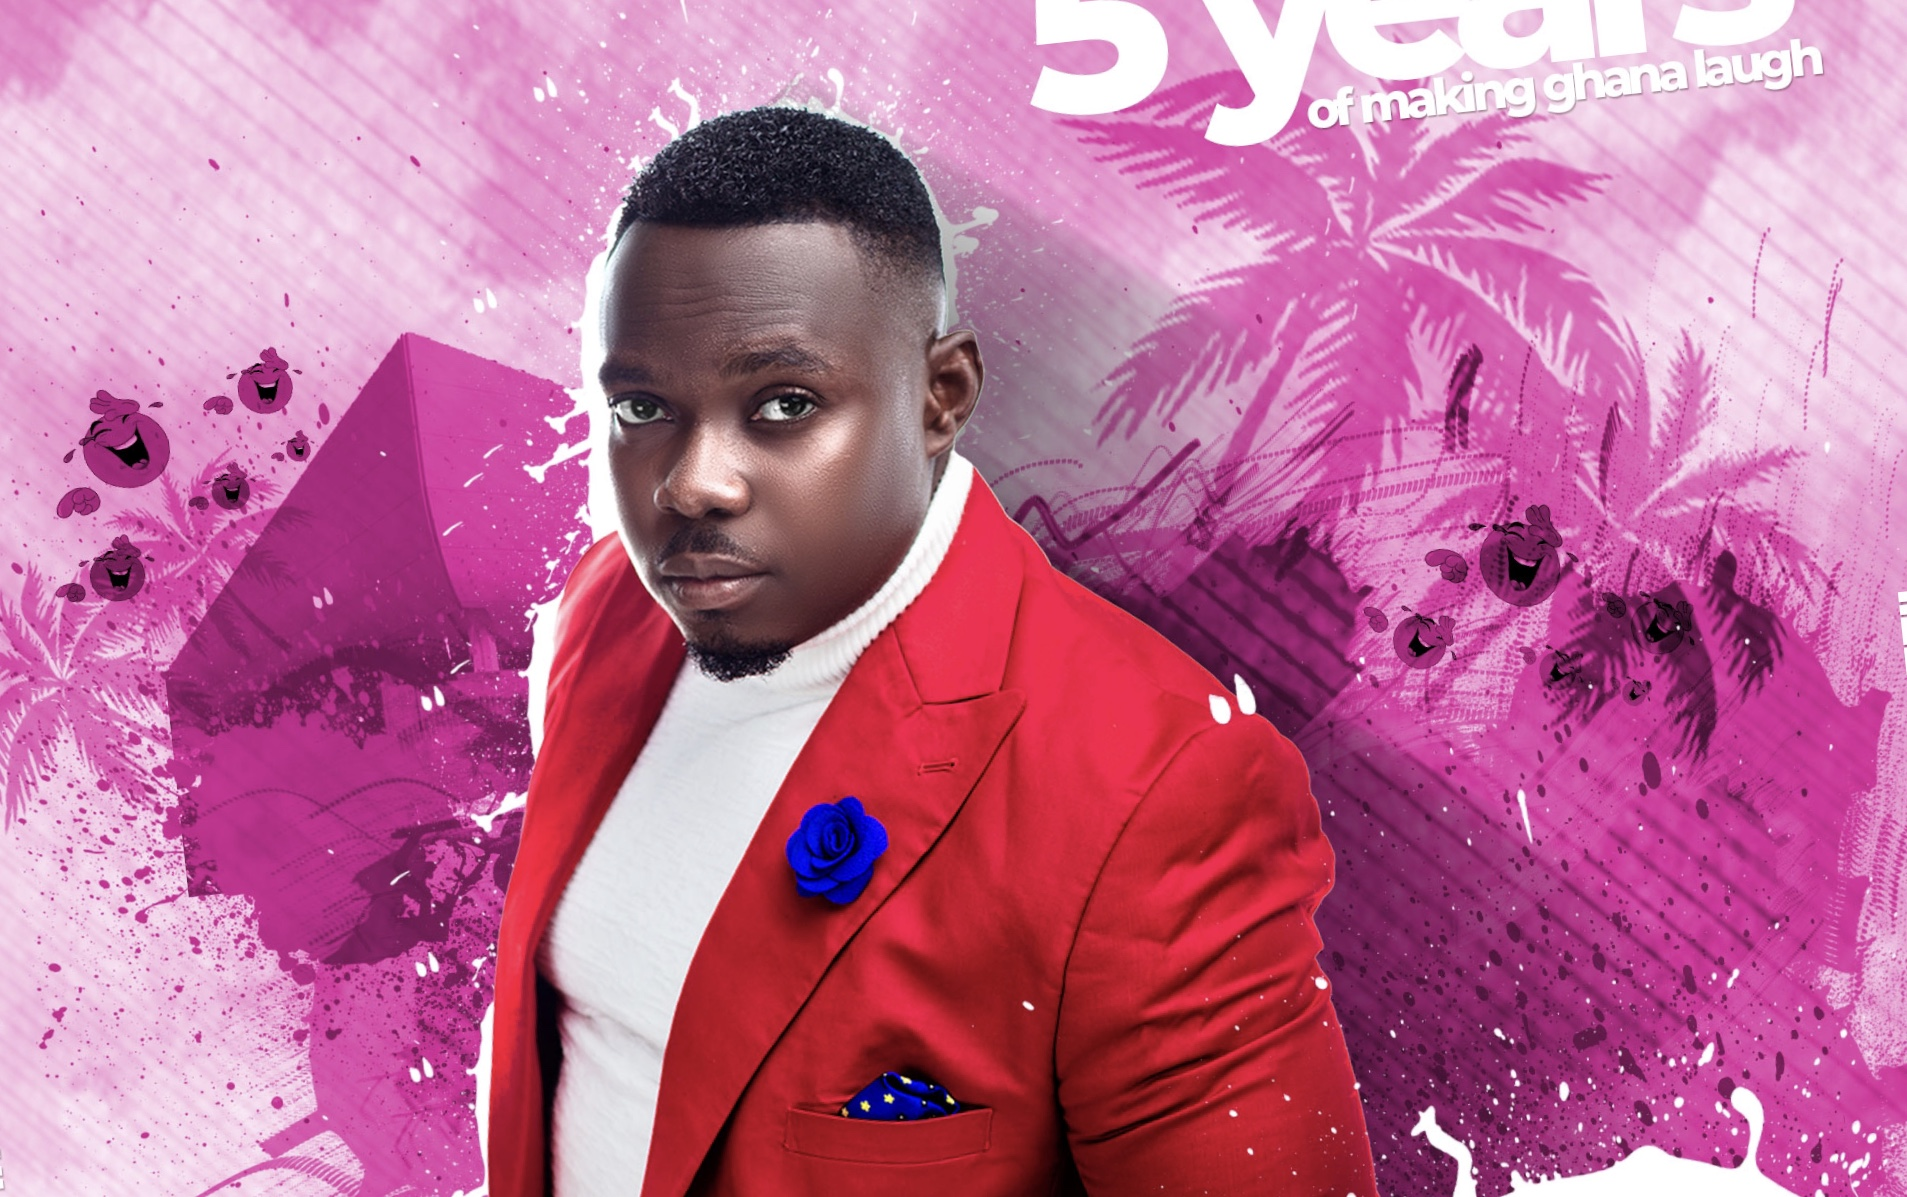 The Good & The Bad, Comedian Shegelabobo celebrates 5 years in His Comedy Career.